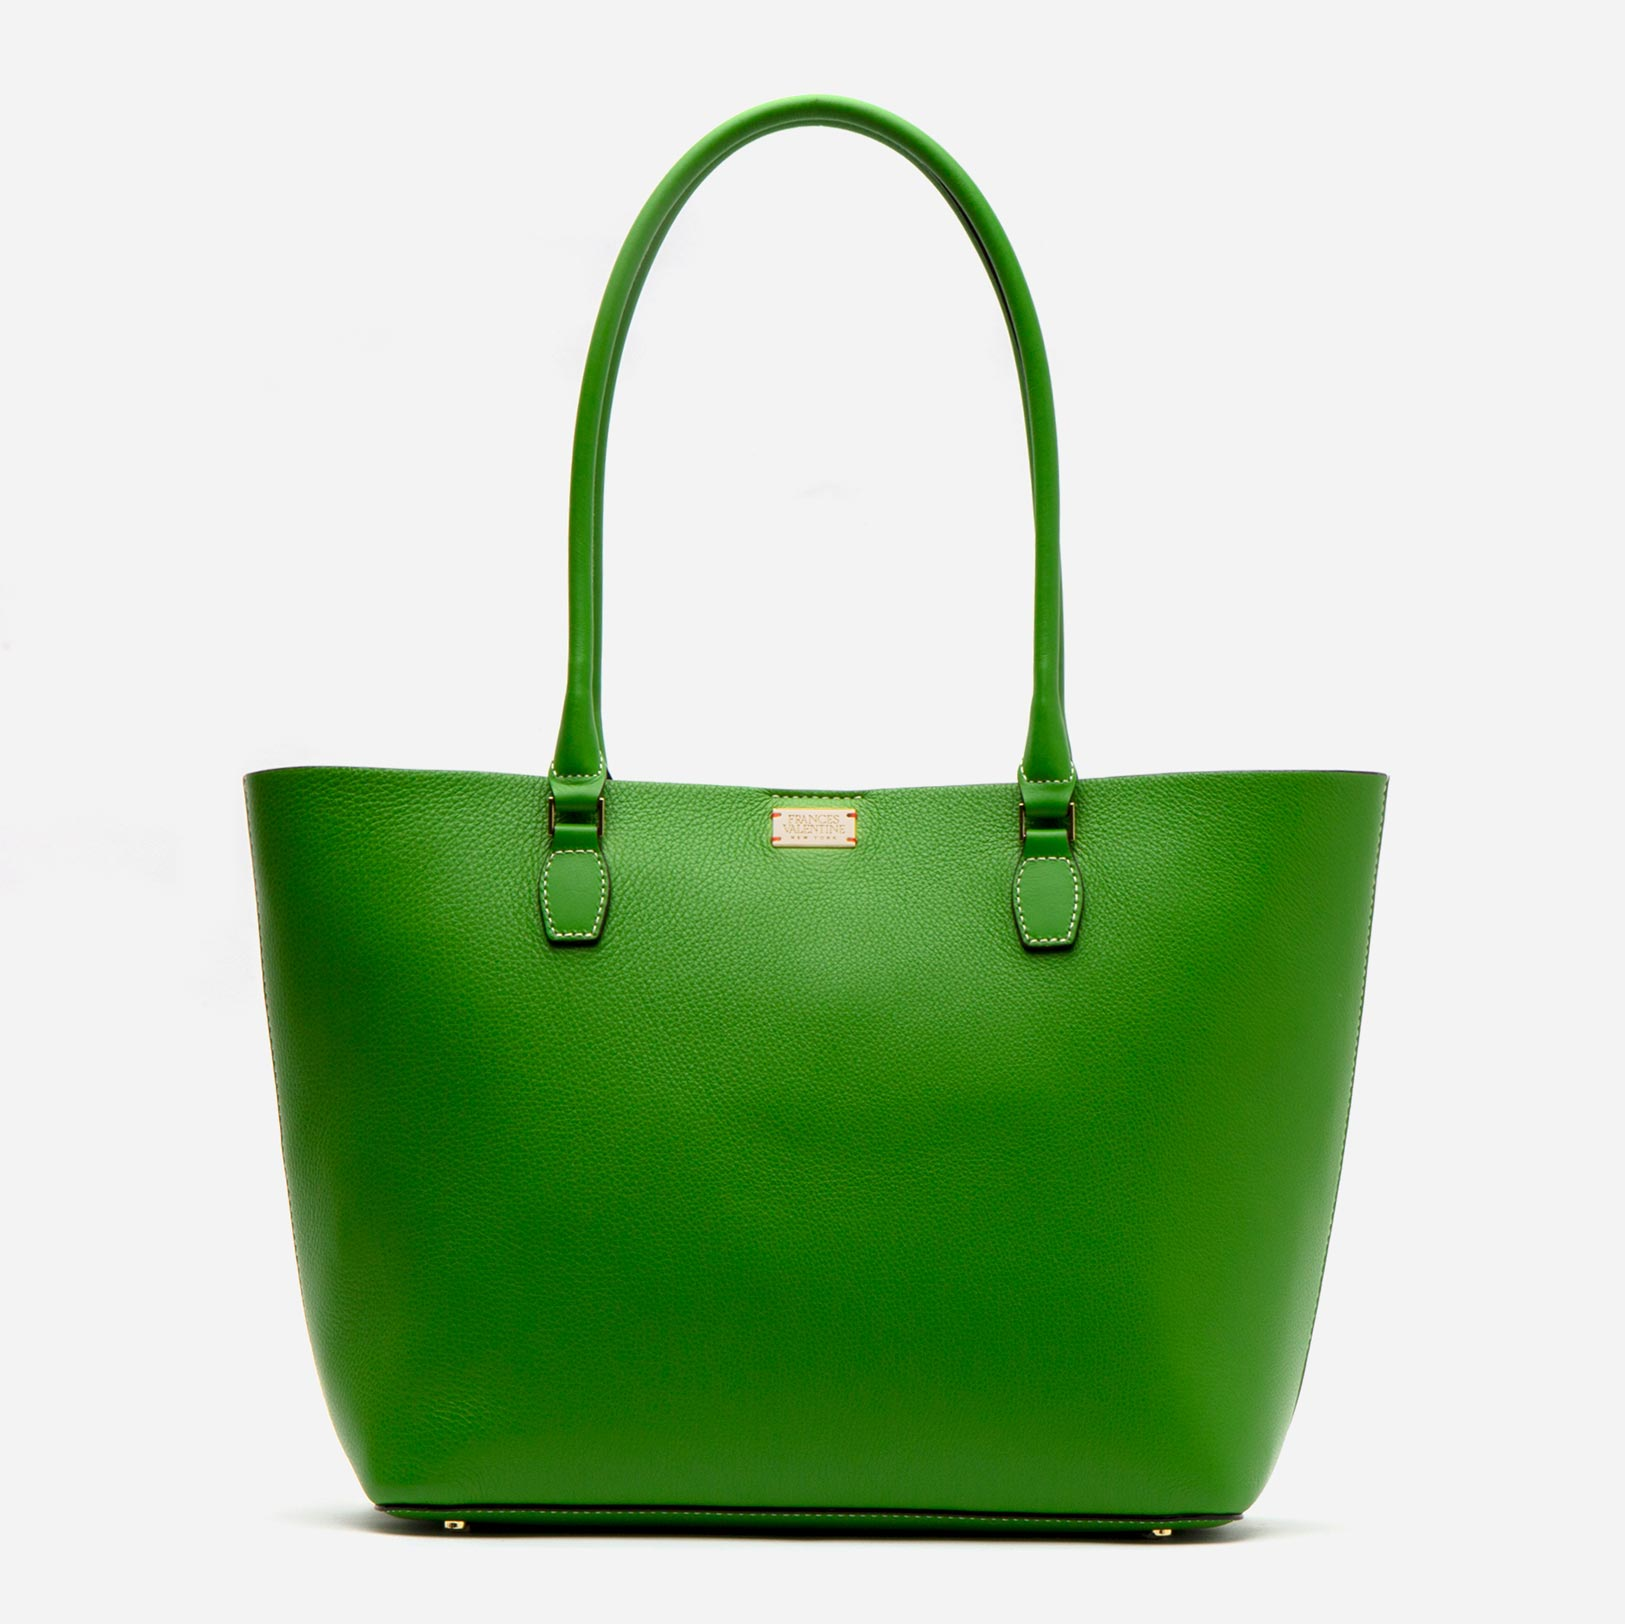 Medium Trixie Tumbled Leather Tote Green - Frances Valentine